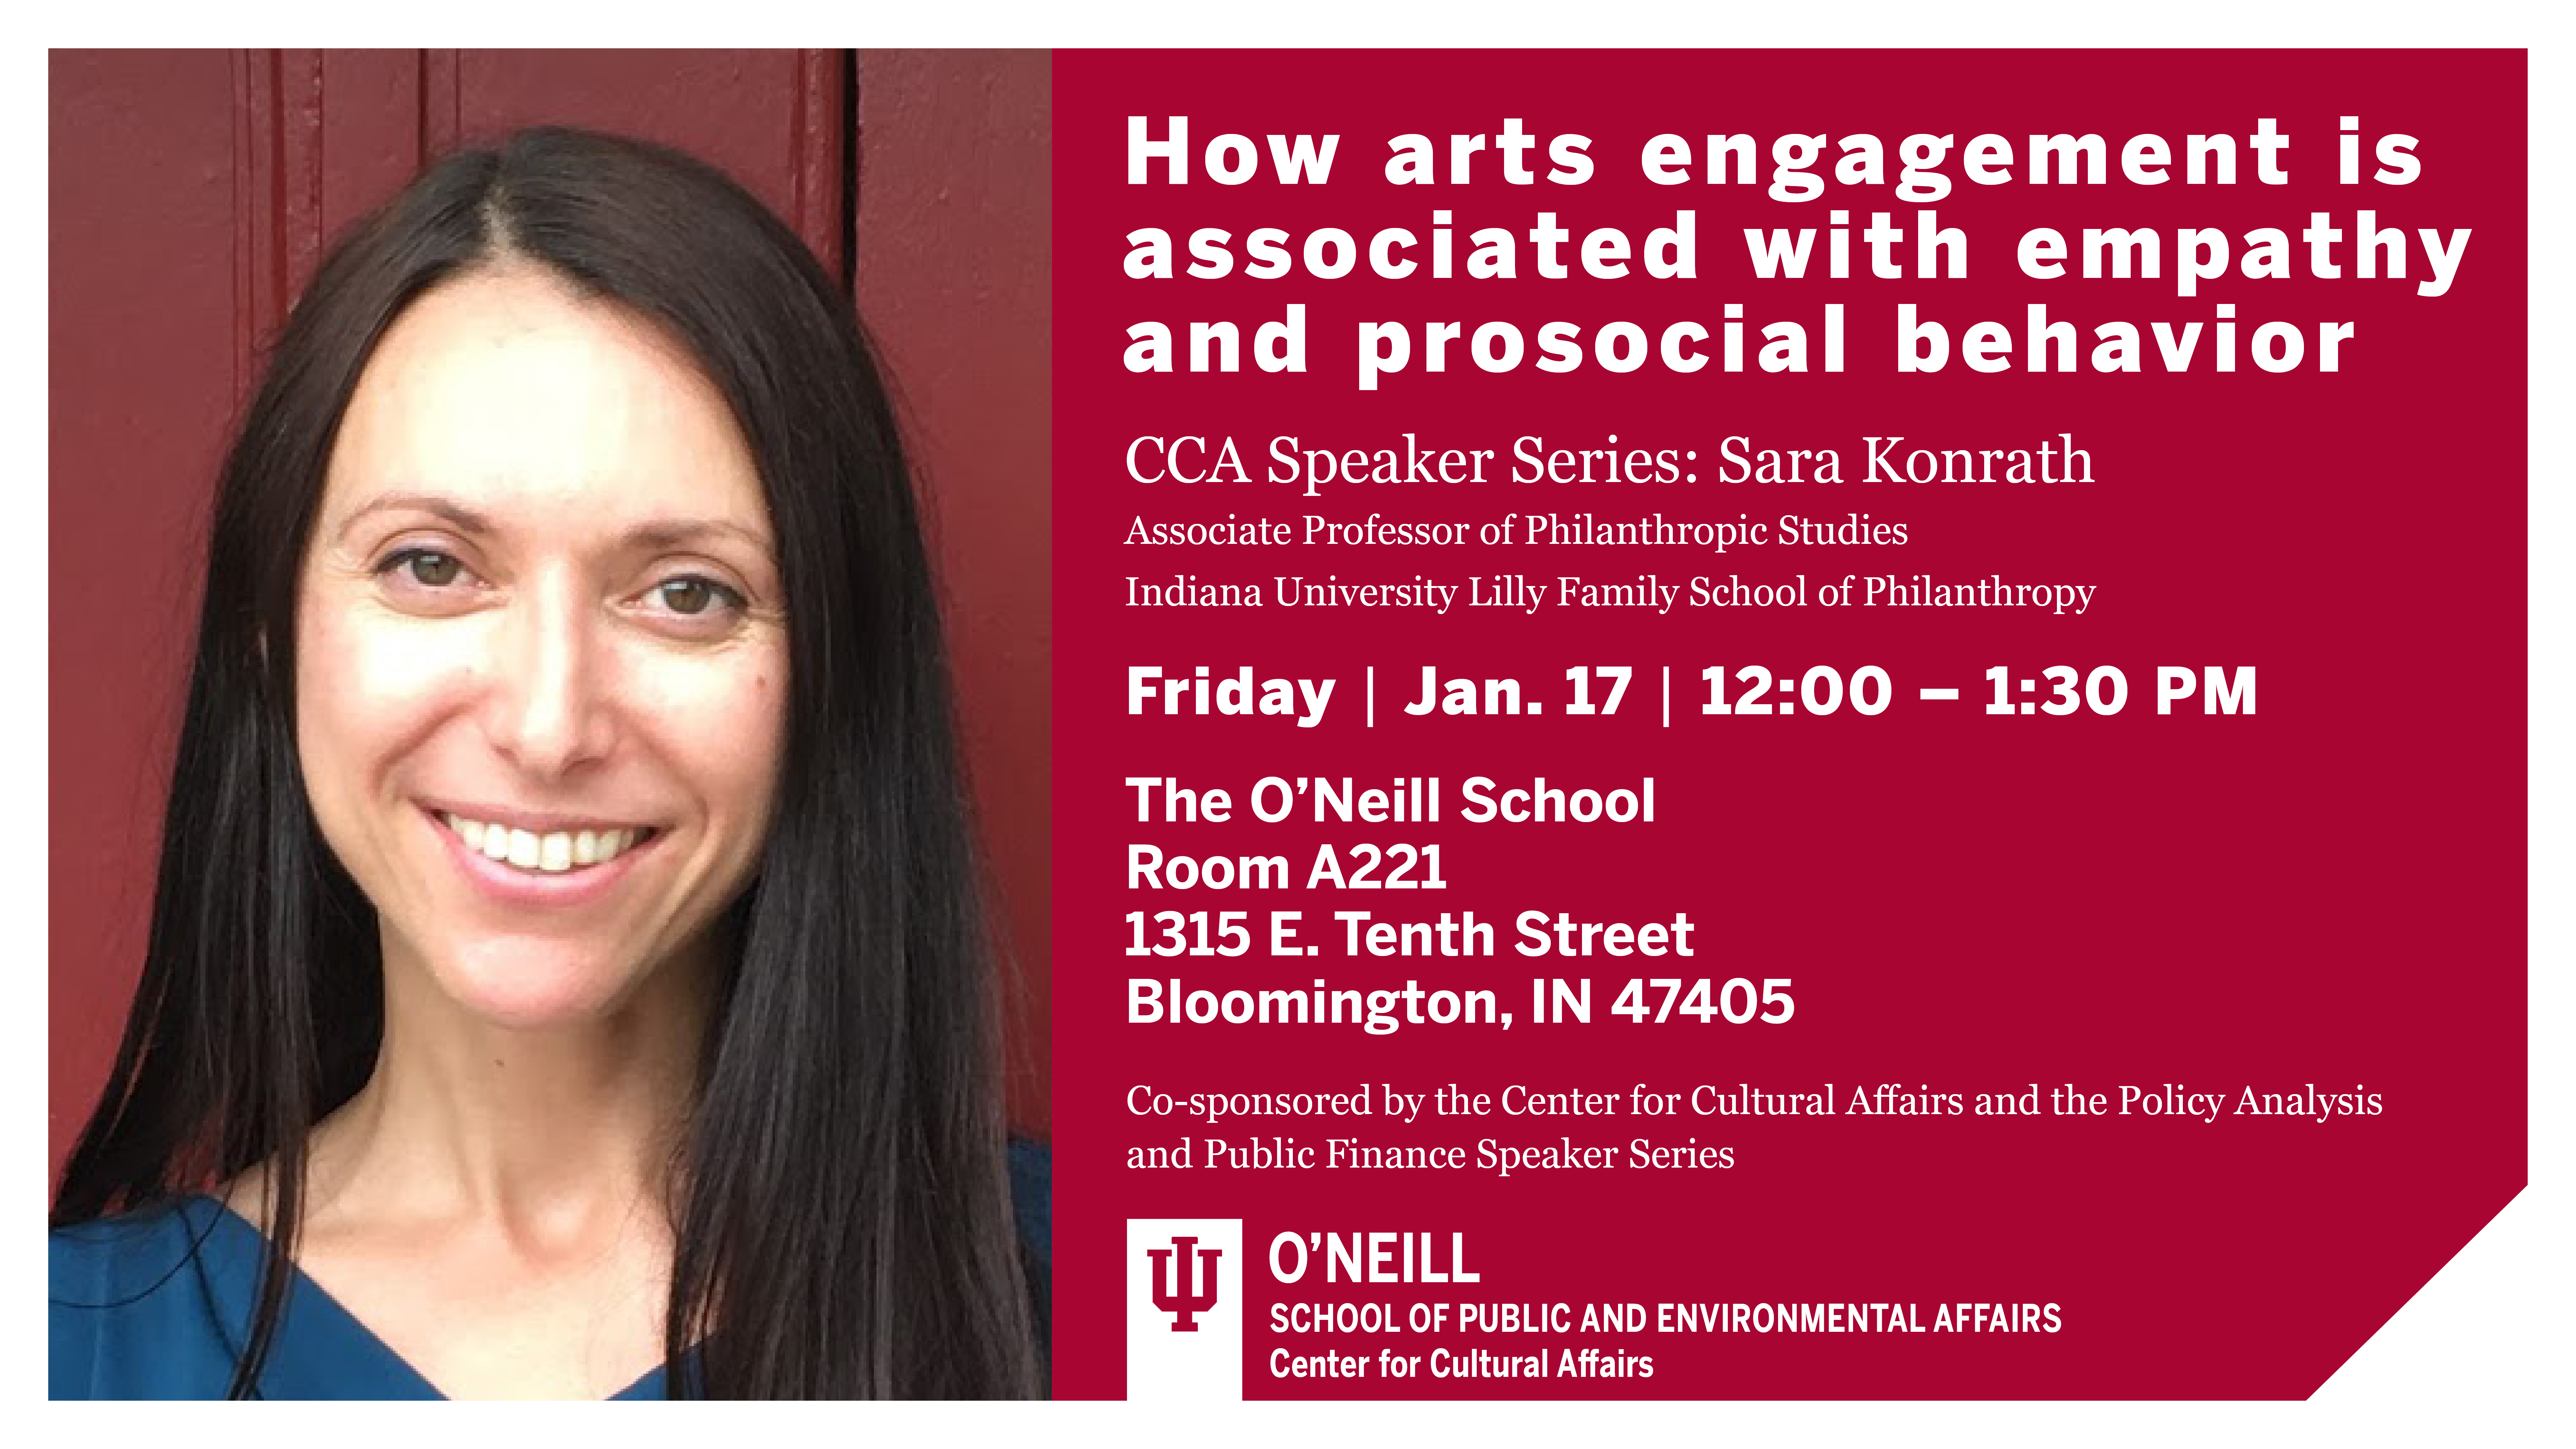 How arts engagement is associated with empathy and prosocial behavior  CCA Speaker Series: Sara Konrath  Associate Professor of Philanthropic Studies, Indiana University Lilly Family School of Philanthropy  Friday Jan 17 12:00-1:30 p.m.  The O'Neill School  Room A221  1315 E Tenth Street  Bloomington, IN 47401  Co-sponsored by the Center for Cultural Affairs and the Policy Analysis and Public Finance Speaker Series